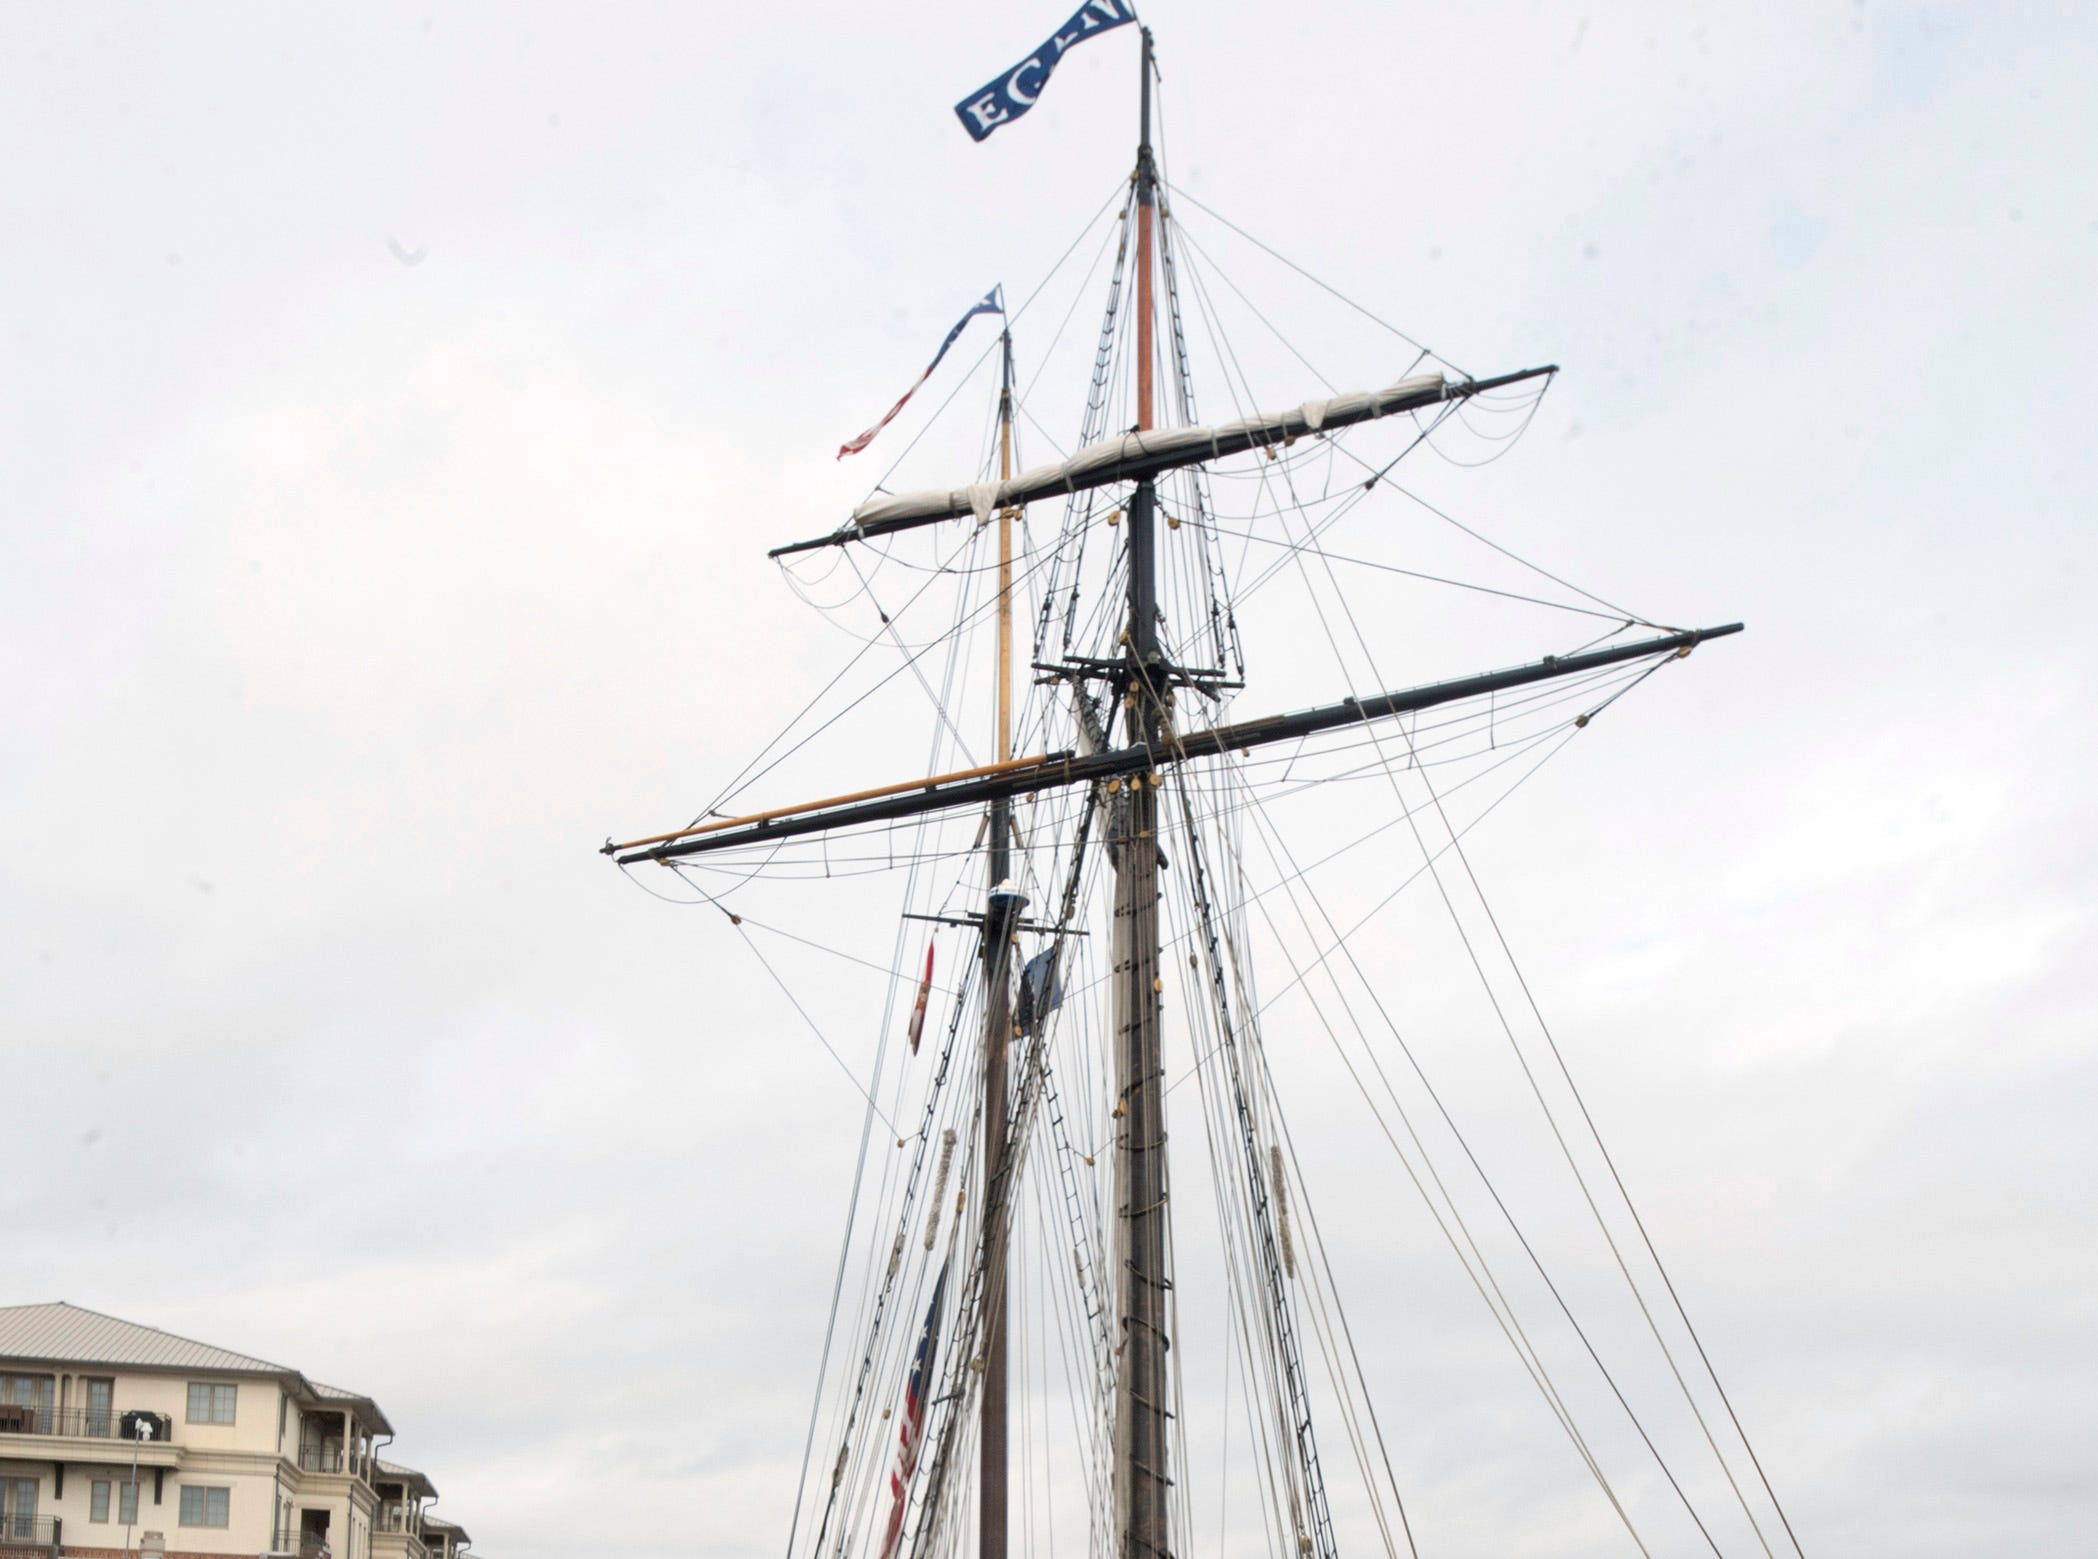 The tall ship Lynx has arrived back in Pensacola. The recreation of a 19th-century schooner was docked in Pensacola along the pier at  Plaza de Luna on Monday, Feb. 4, 2019.  The living history museum will be in City of Five Flags offering tours to the public through March 11.